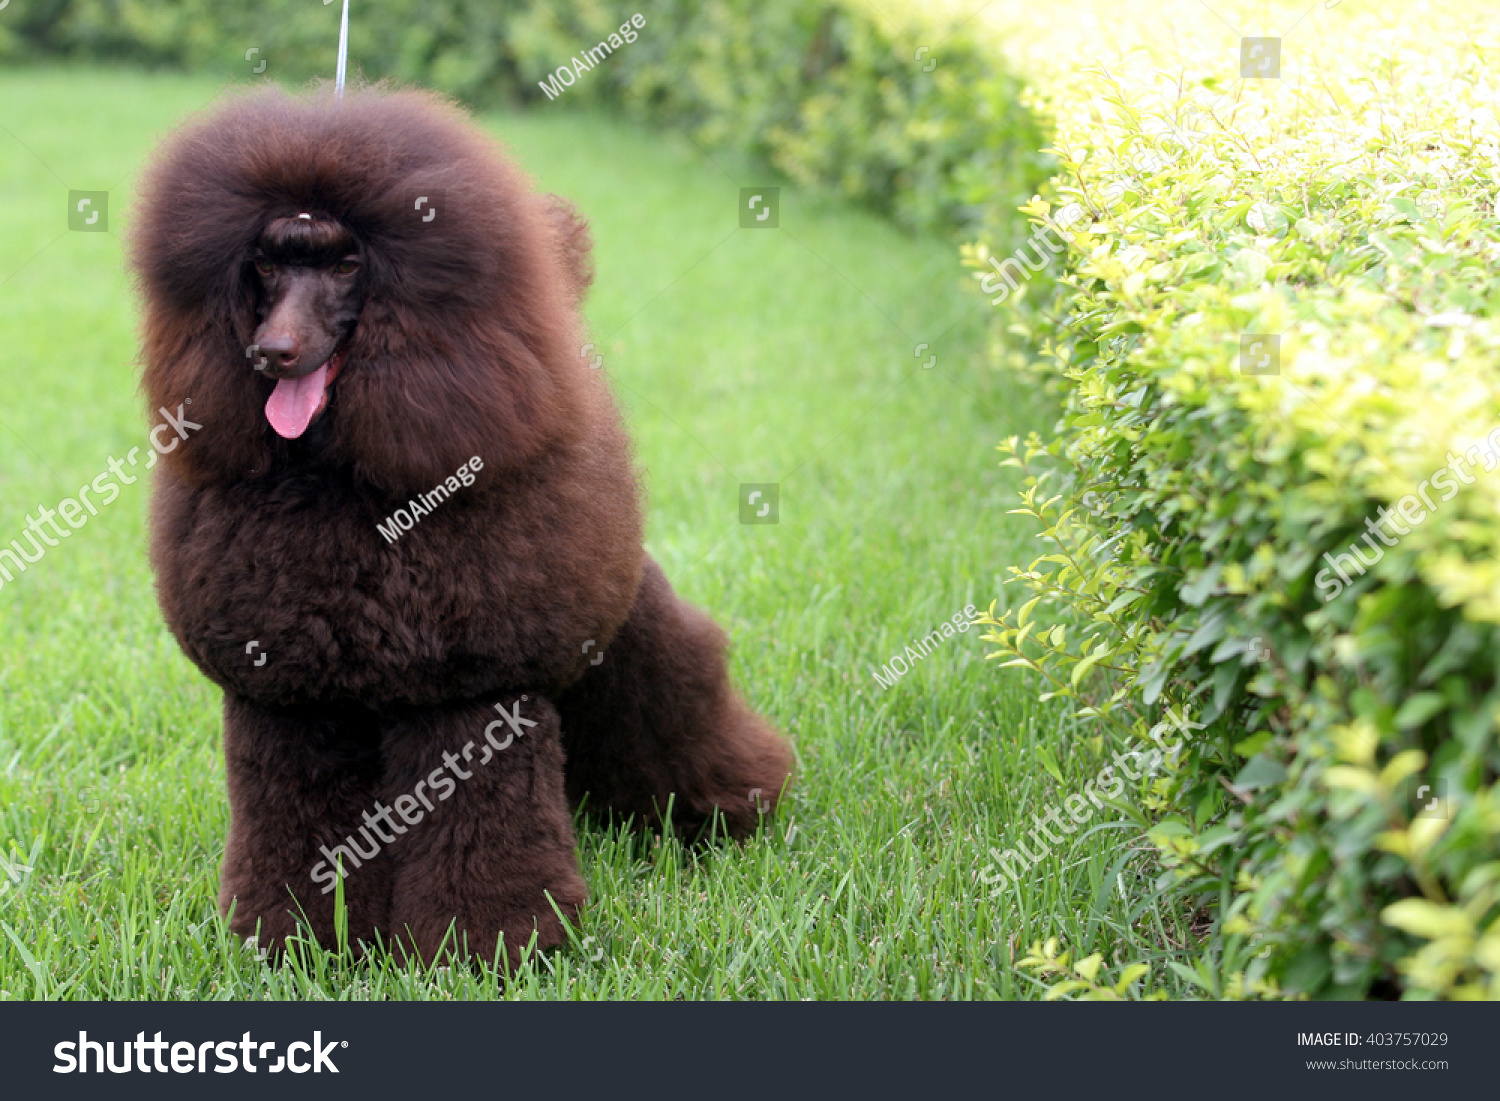 The  purebred big poodle dog portrait  in outdoors #403757029